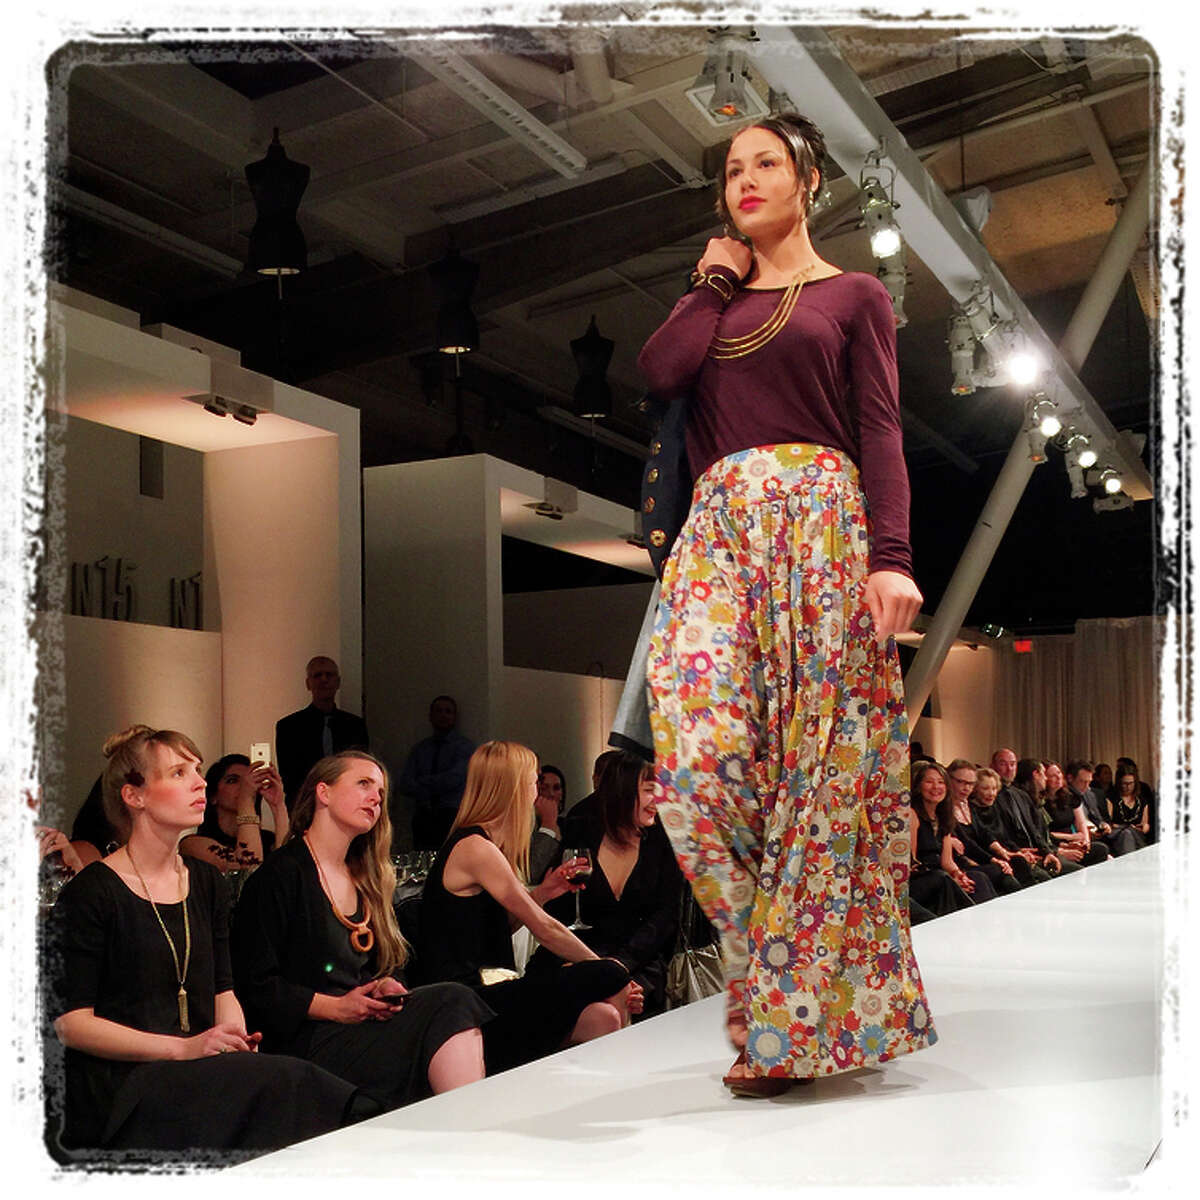 8:17 p.m. March 25: Liberty-print fabric in EssEff-centric creations by Salt owner/CCA alum Amber Clisura.